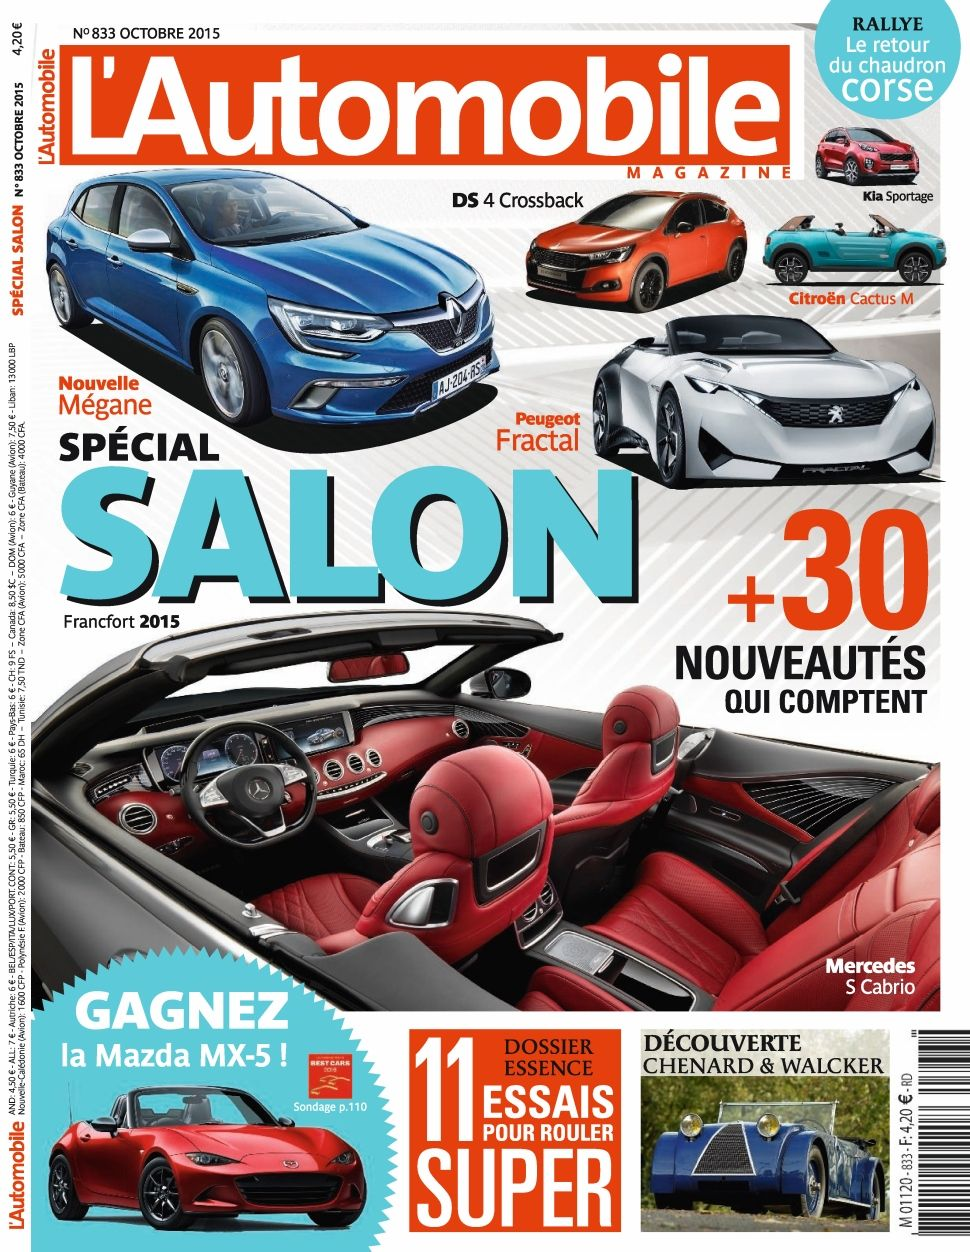 L'Automobile magazine 833 - Octobre 2015